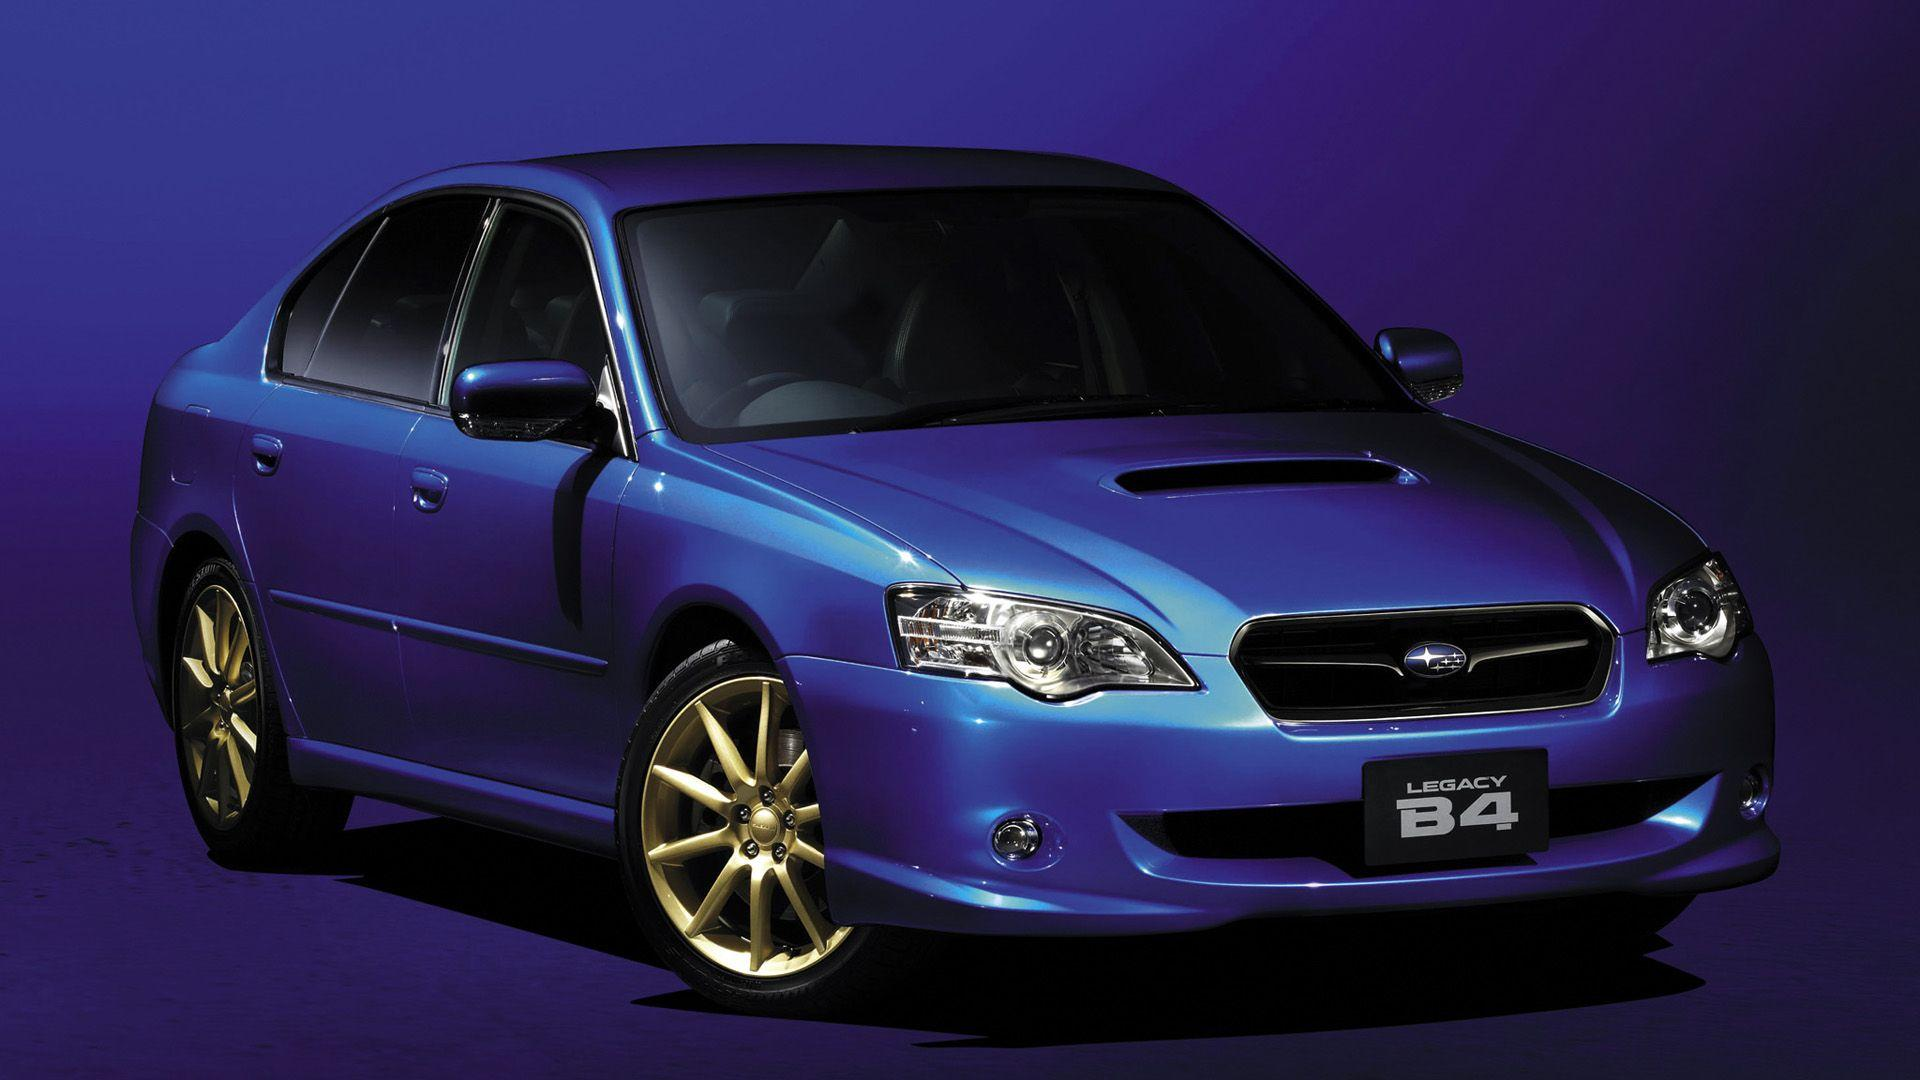 2005 Subaru Legacy GT B4 Spec B Wallpapers & HD Images - WSupercars